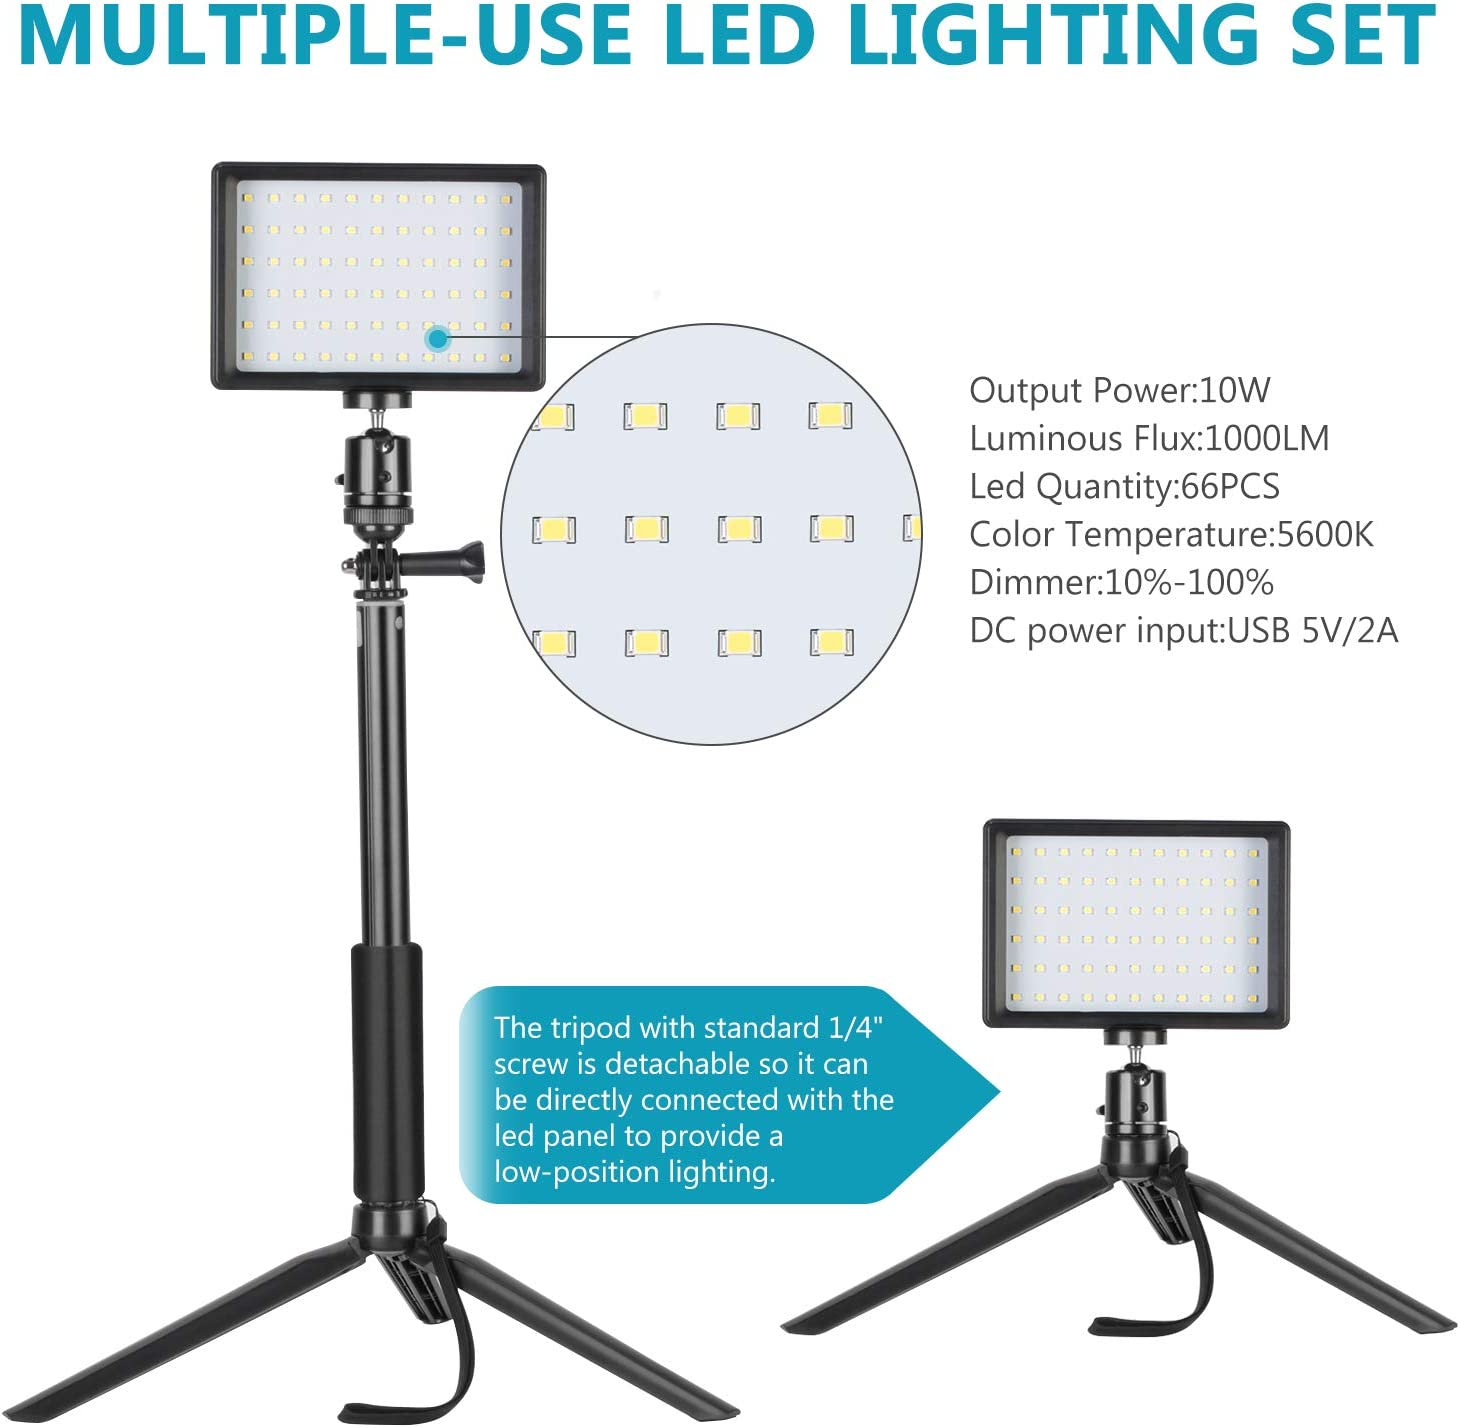 Neewer 3-Pack Portable Photography Lighting Kit Dimmable 5600K USB 66 LED Video Light with Adjustable Tripod Stand//Color Filters for Table Top//Low Angle Product Shooting YouTube Video Recording